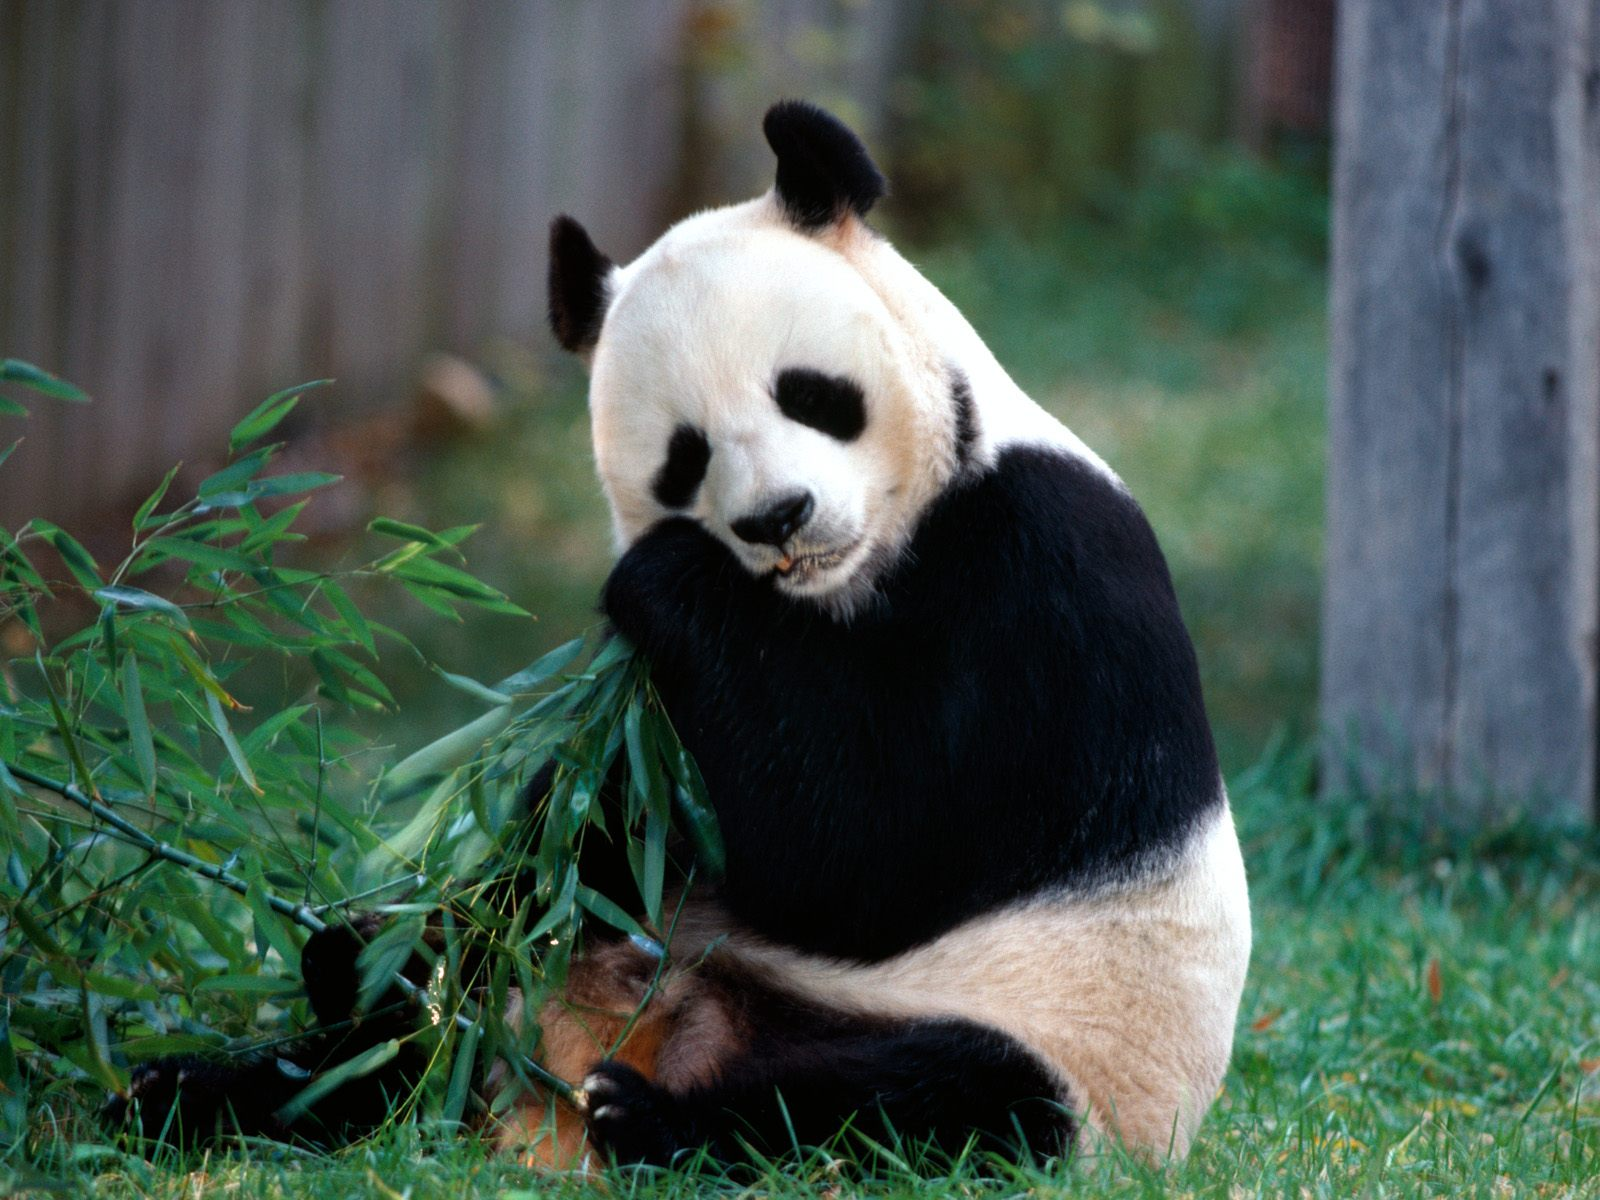 ENCYCLOPEDIA OF ANIMAL FACTS AND PICTURES: PANDA ENDANGERED ANIMALS